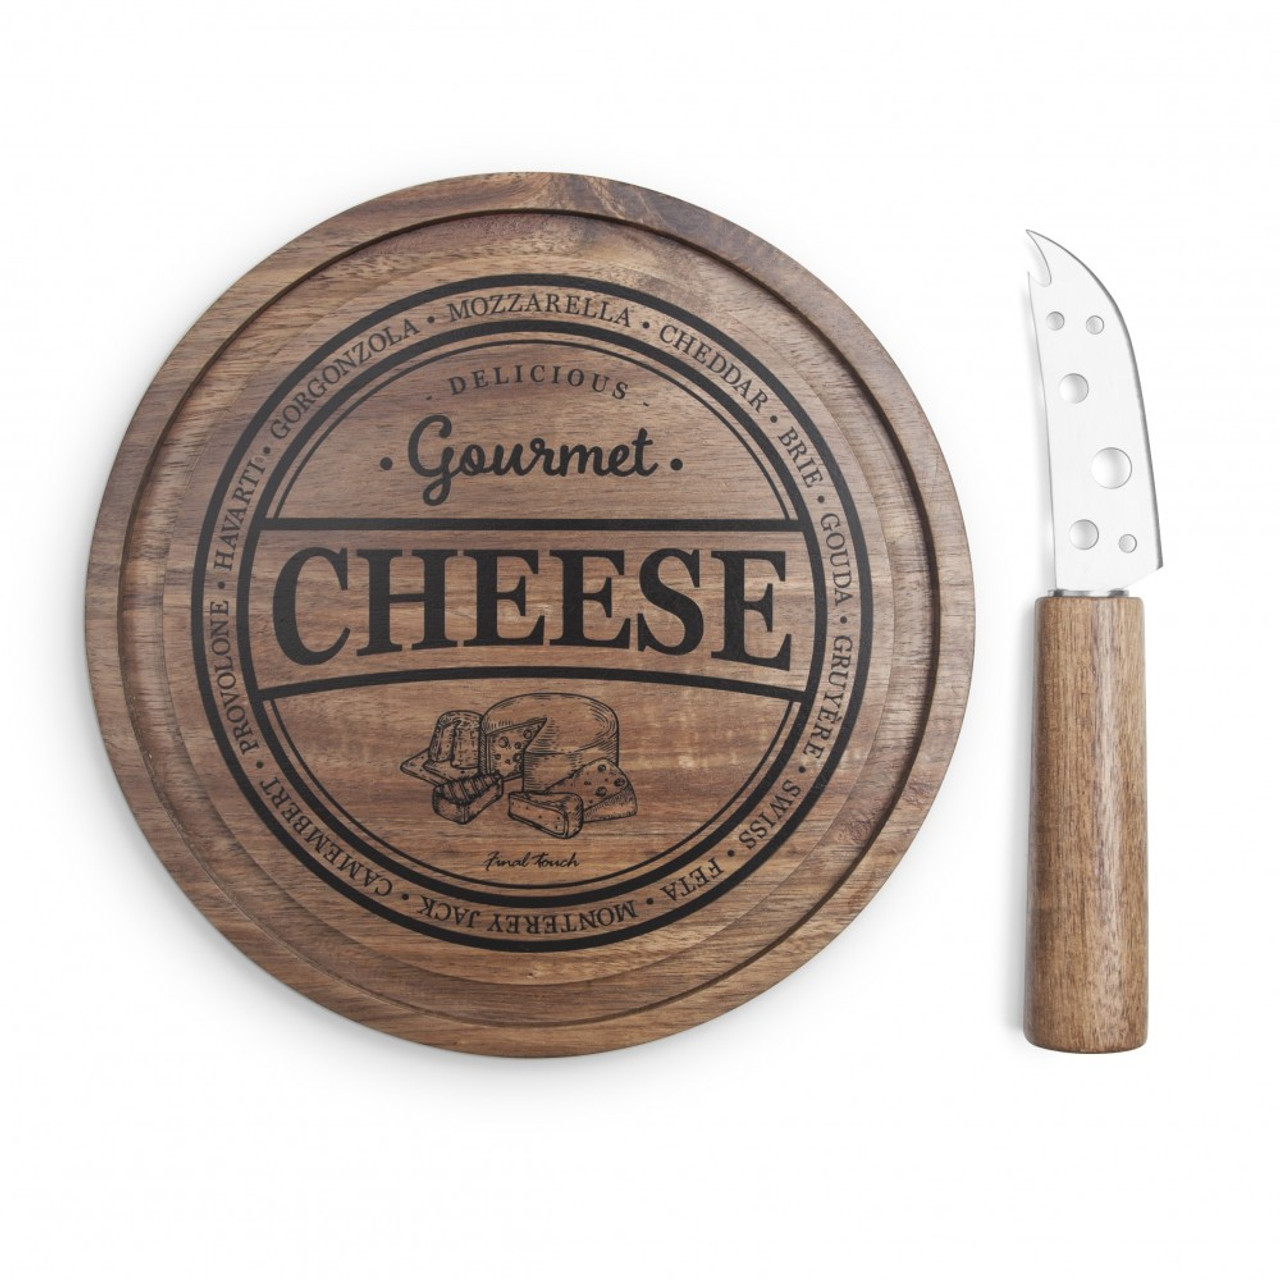 FINAL TOUCH 2 PIECE CHEESE BOARD SET